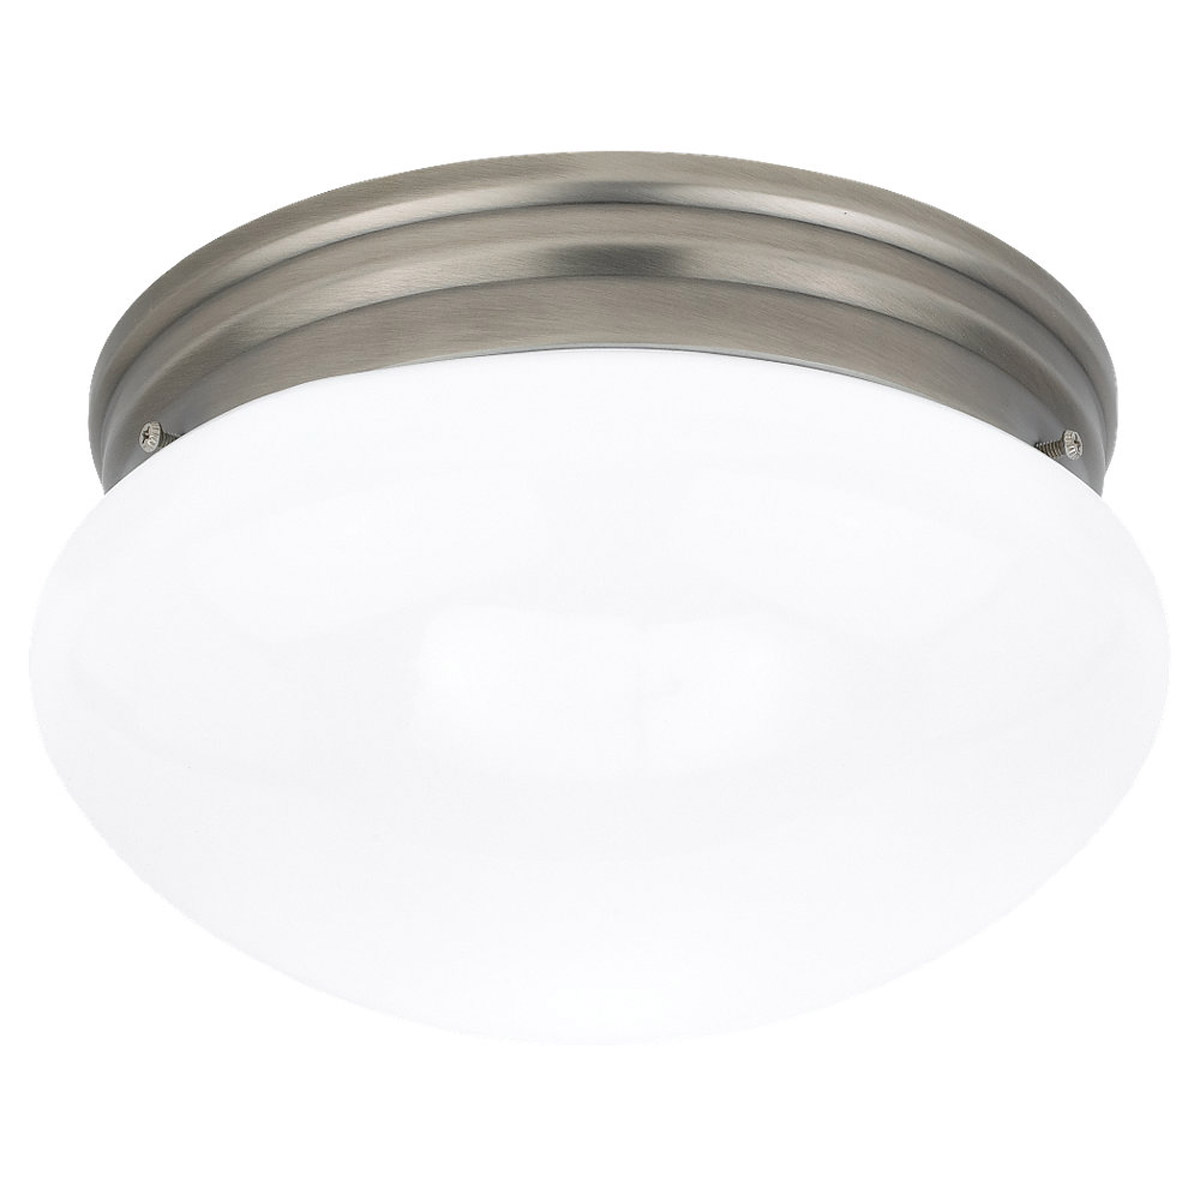 Sea Gull Lighting Webster 2 Light Flush Mount in Antique Brushed Nickel 5328-965 photo